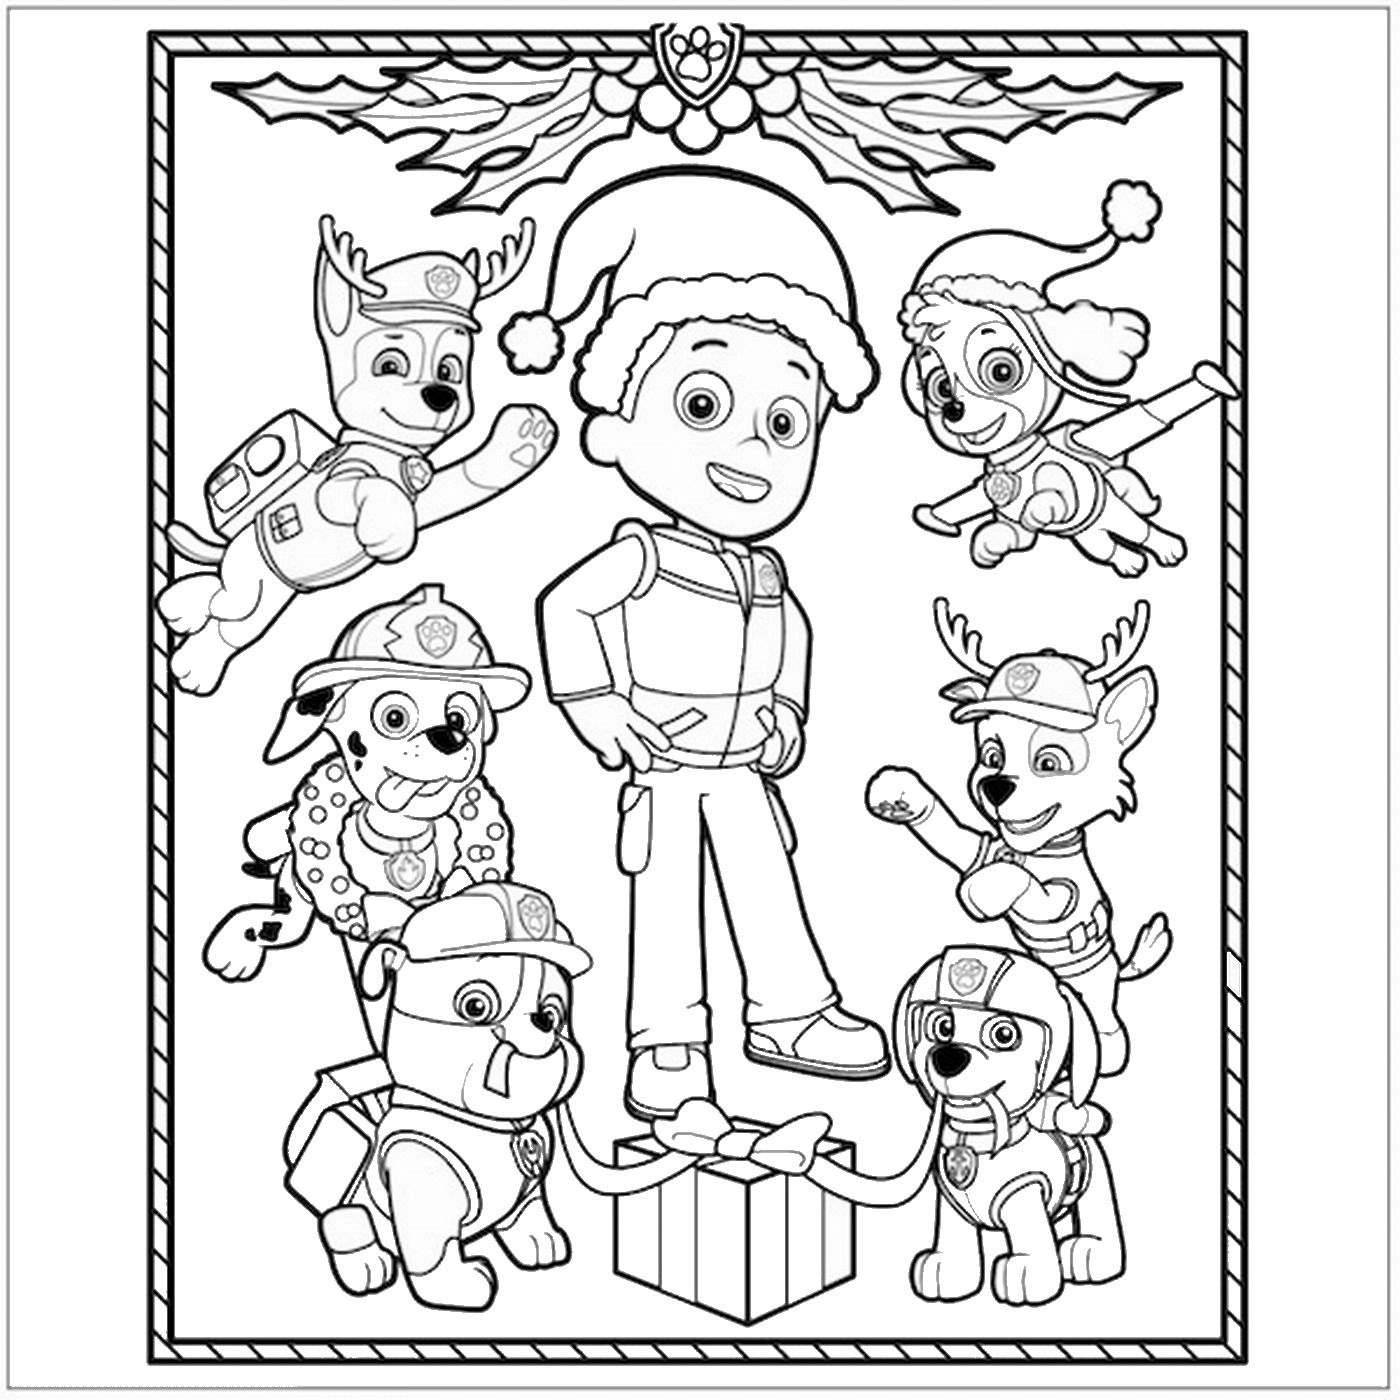 Paw patrol coloring pages christmas - Paw Patrol Christmas Coloring Page More